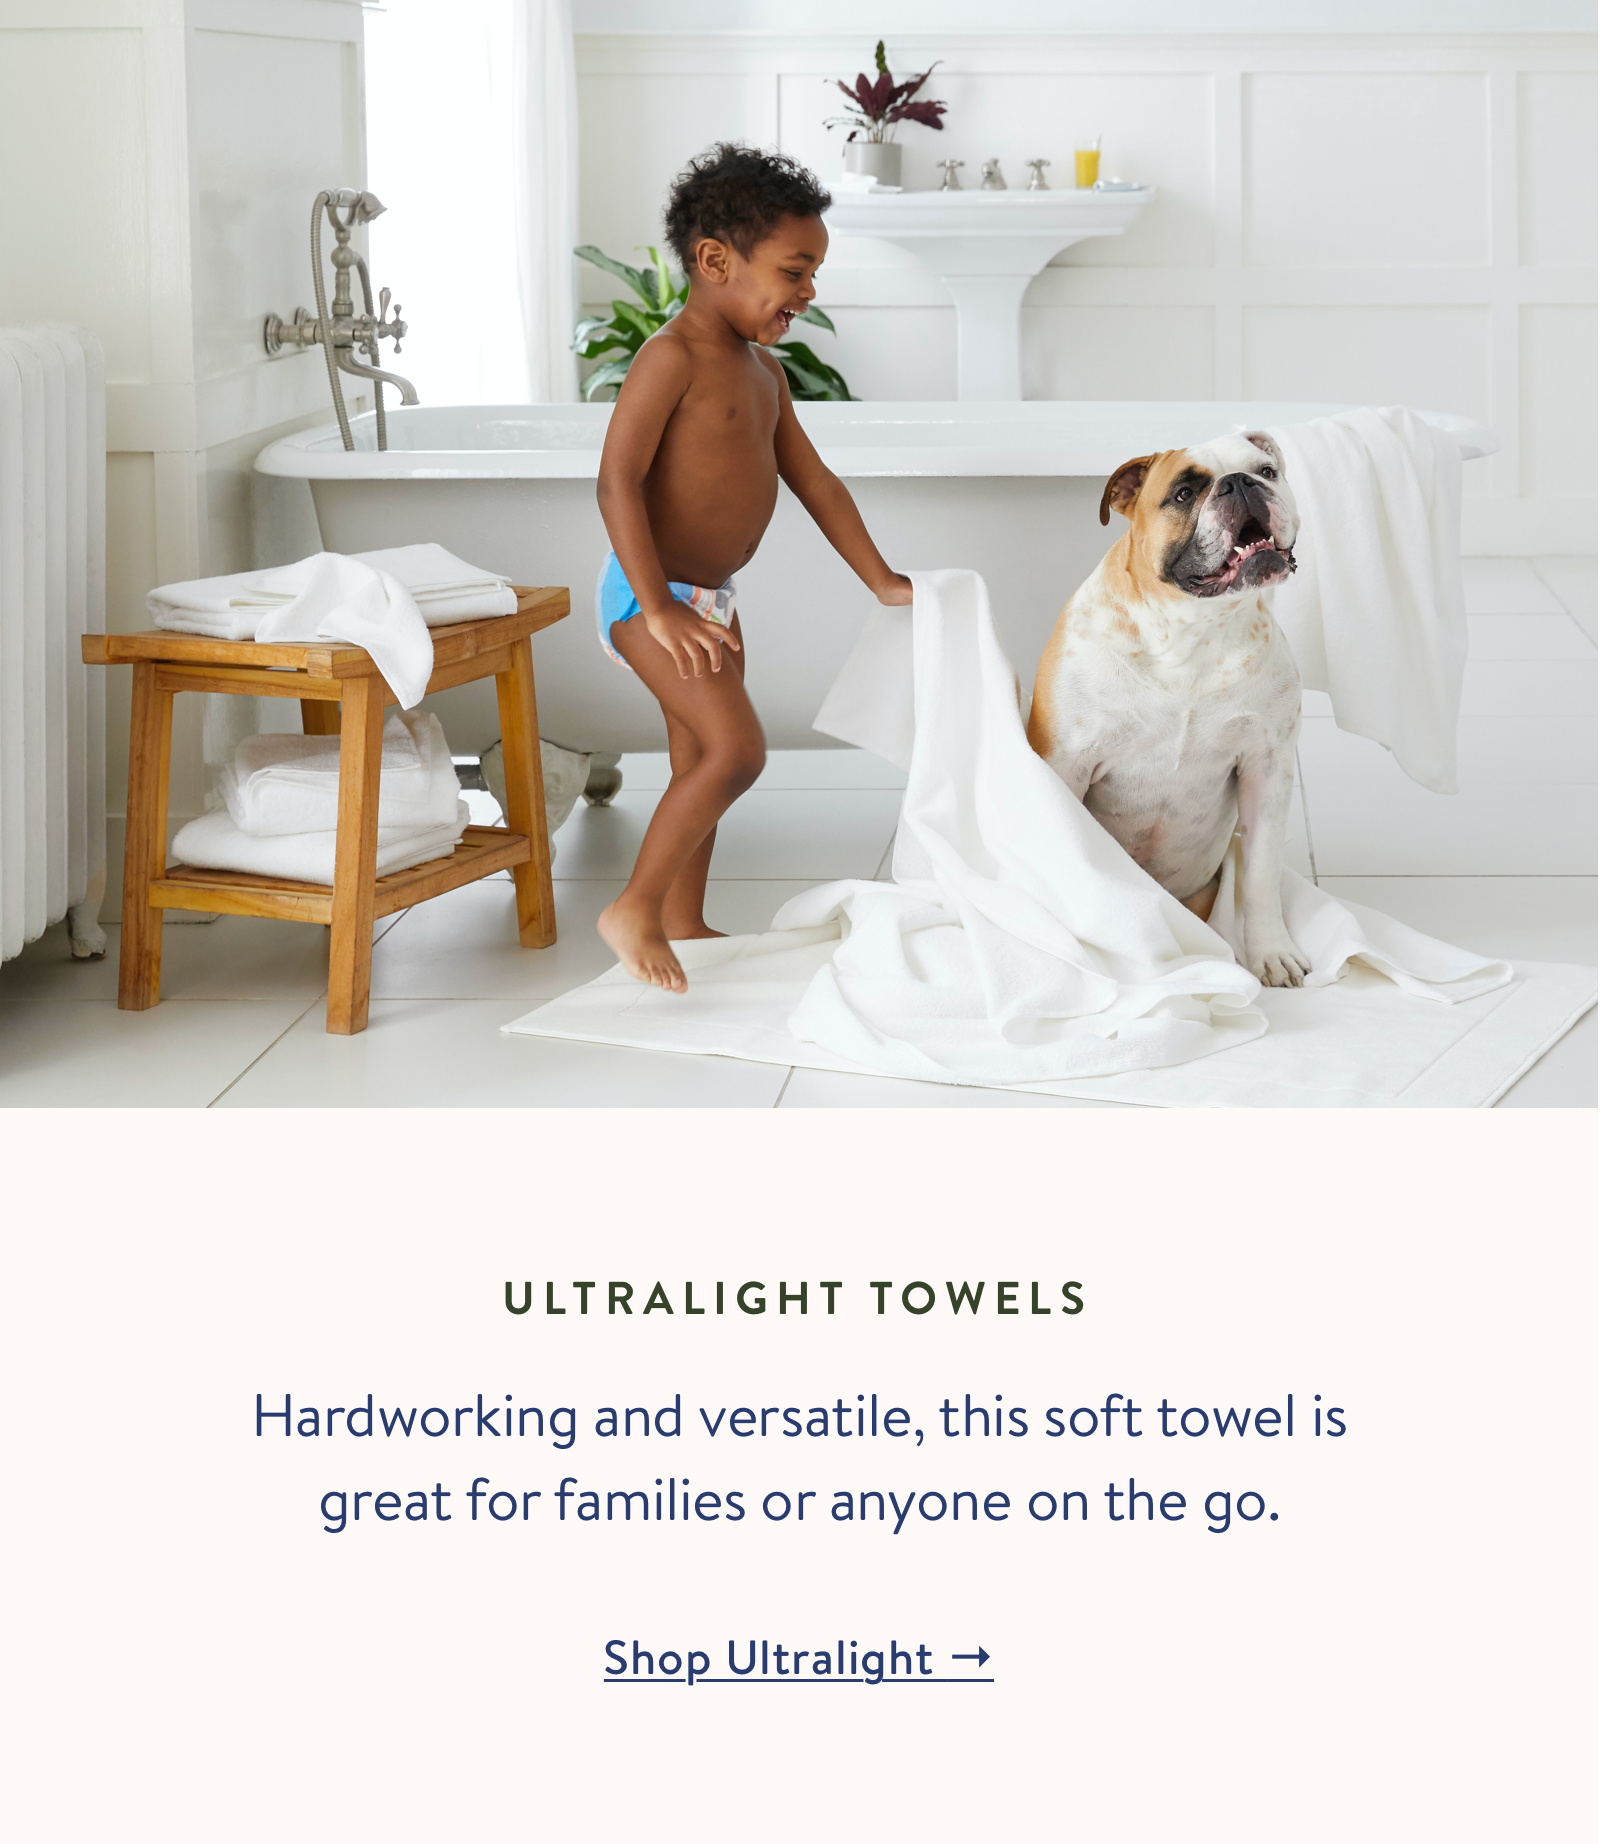 Shop our Ultralight Towels